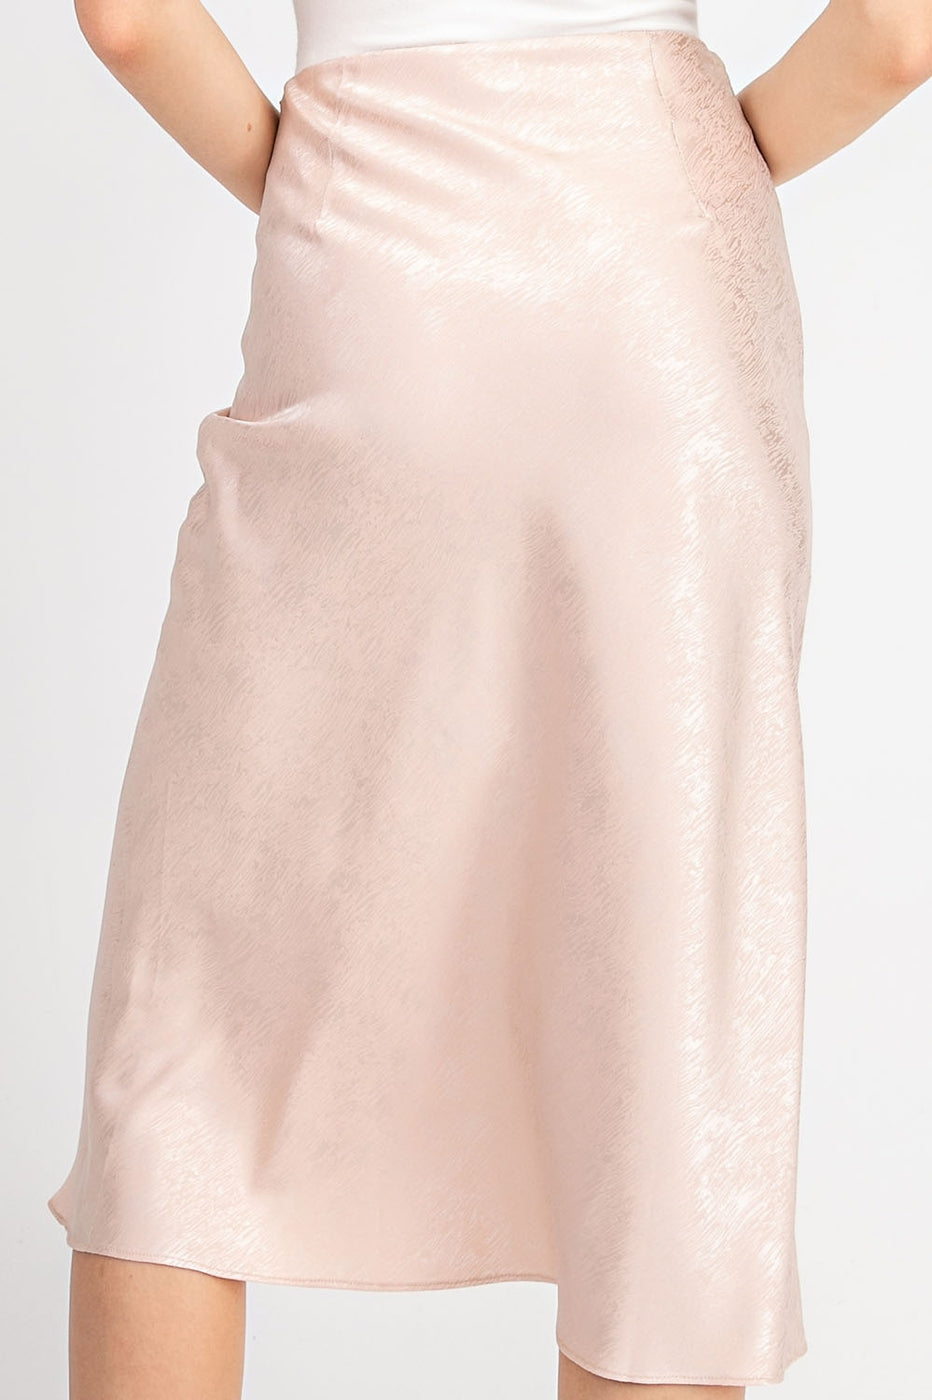 High Waist Midi Skirt With Back Zipper In Light Peach Siin Bees